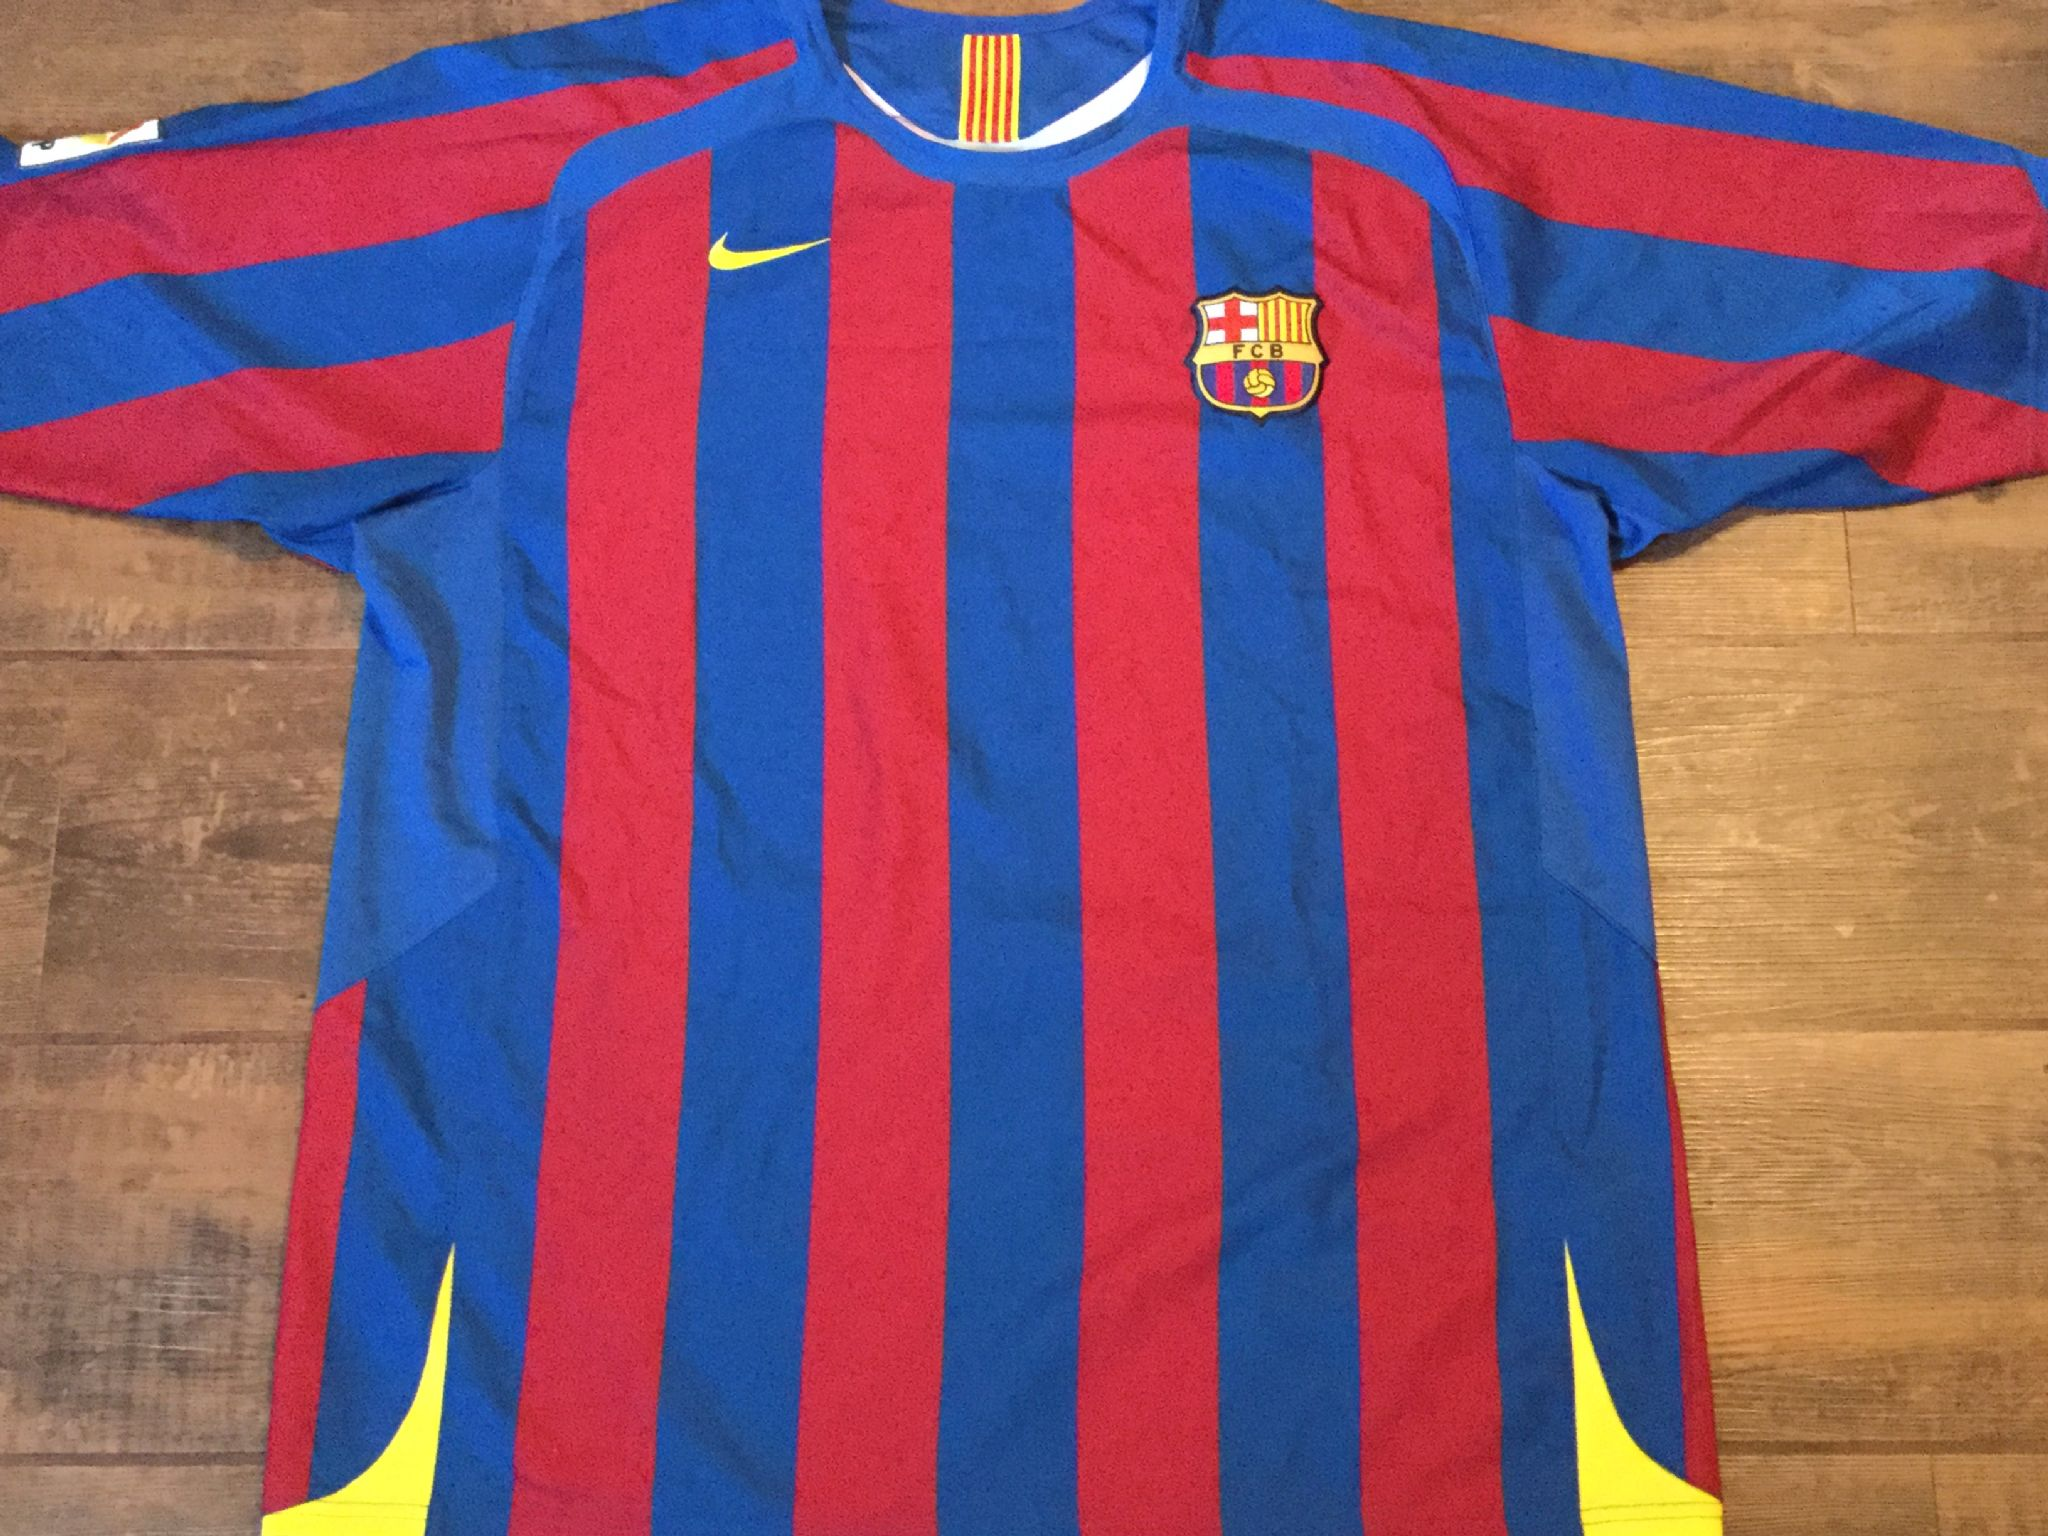 ec1d557ca2d Global Classic Football Shirts   Vintage Old Soccer Jerseys   2005 Barcelona